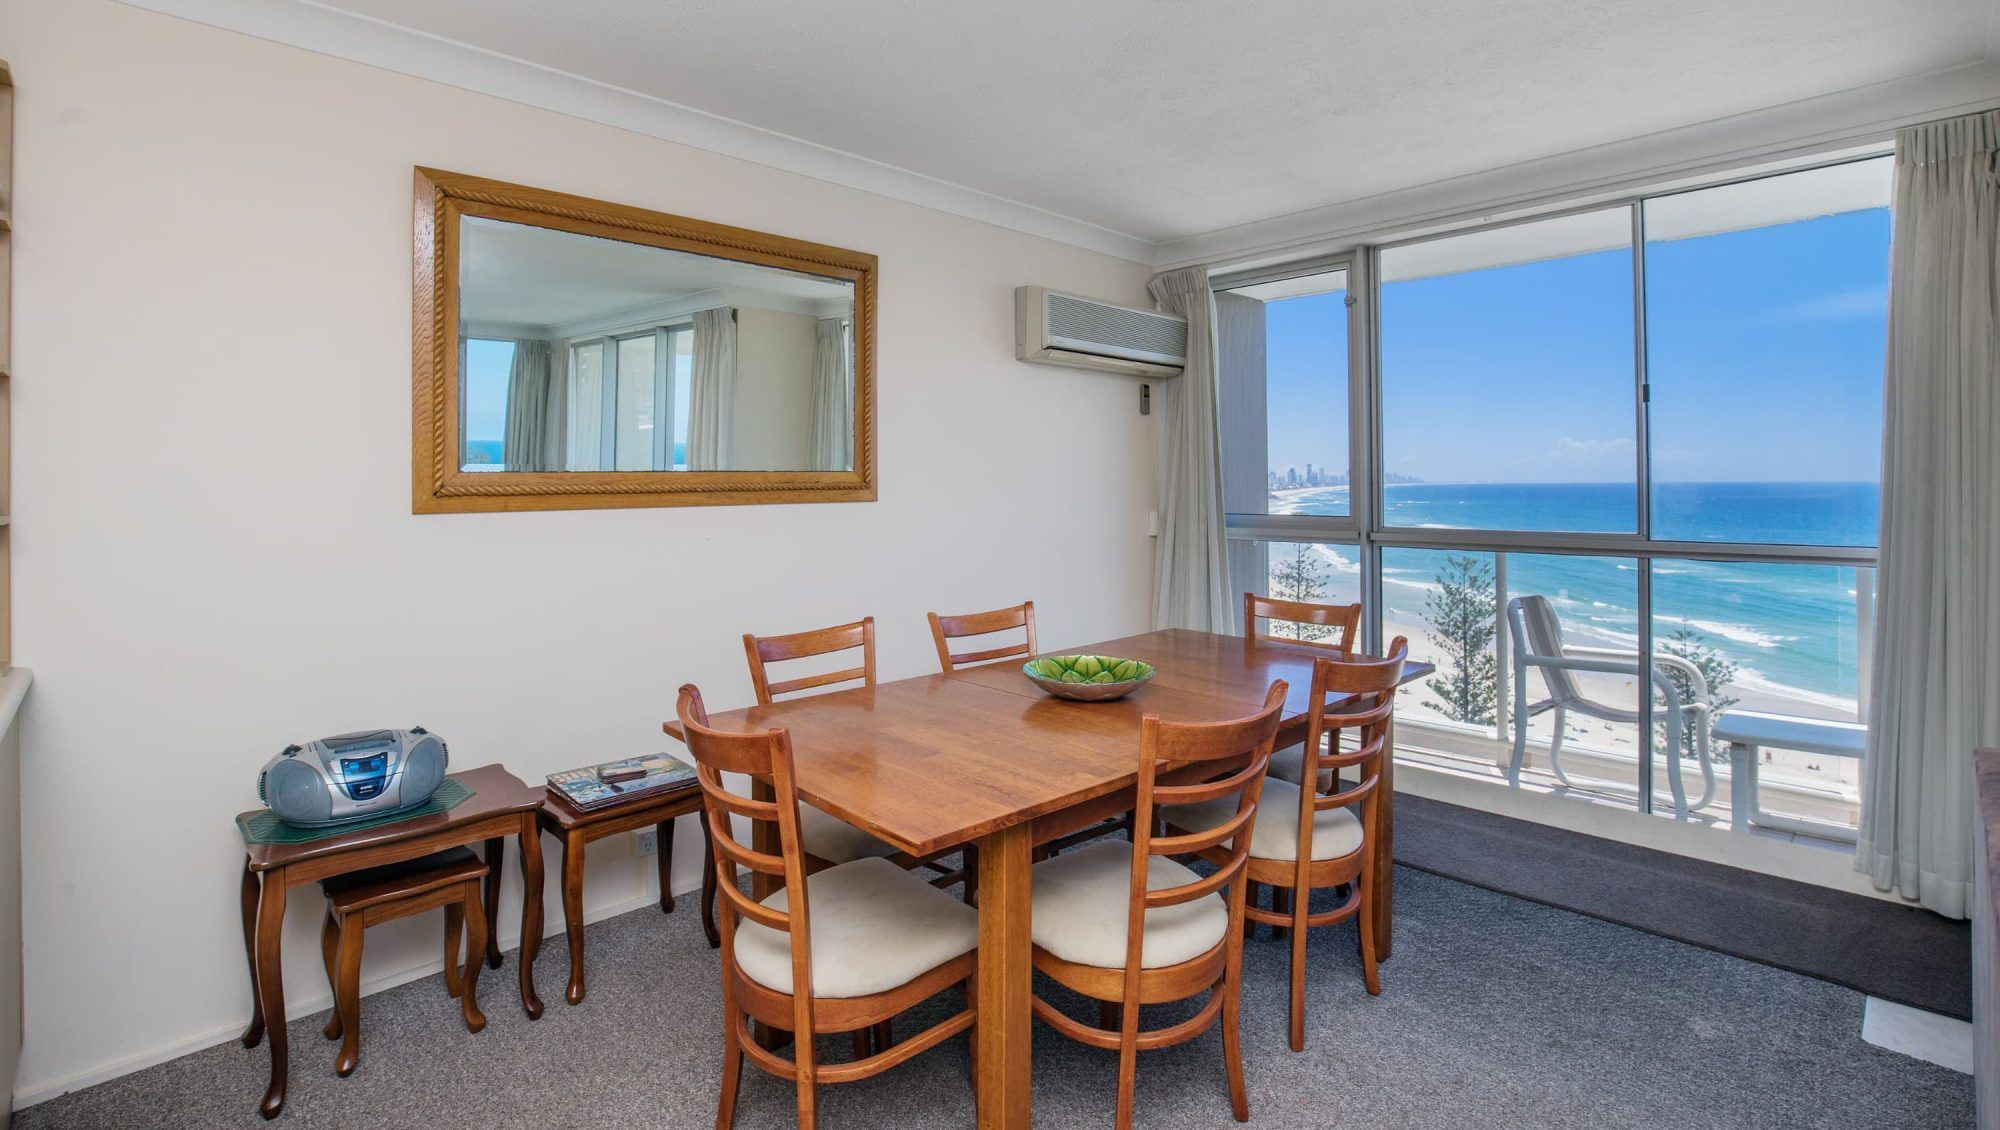 One Bedroom Apartments Gold Coast For Rent 28 Images 2 Bedroom Apartments Gold Coast For